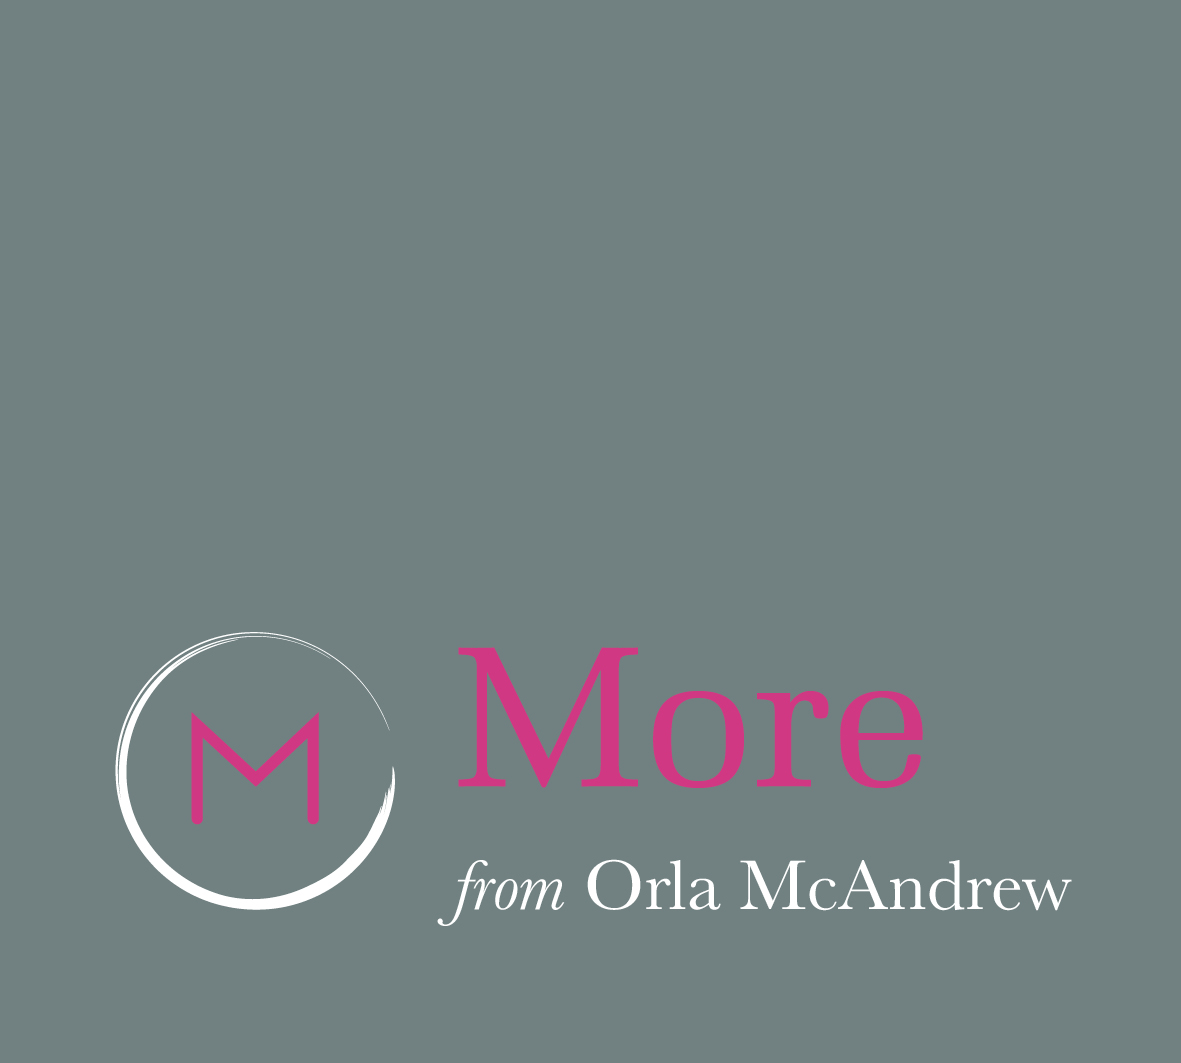 Orla McAndrew